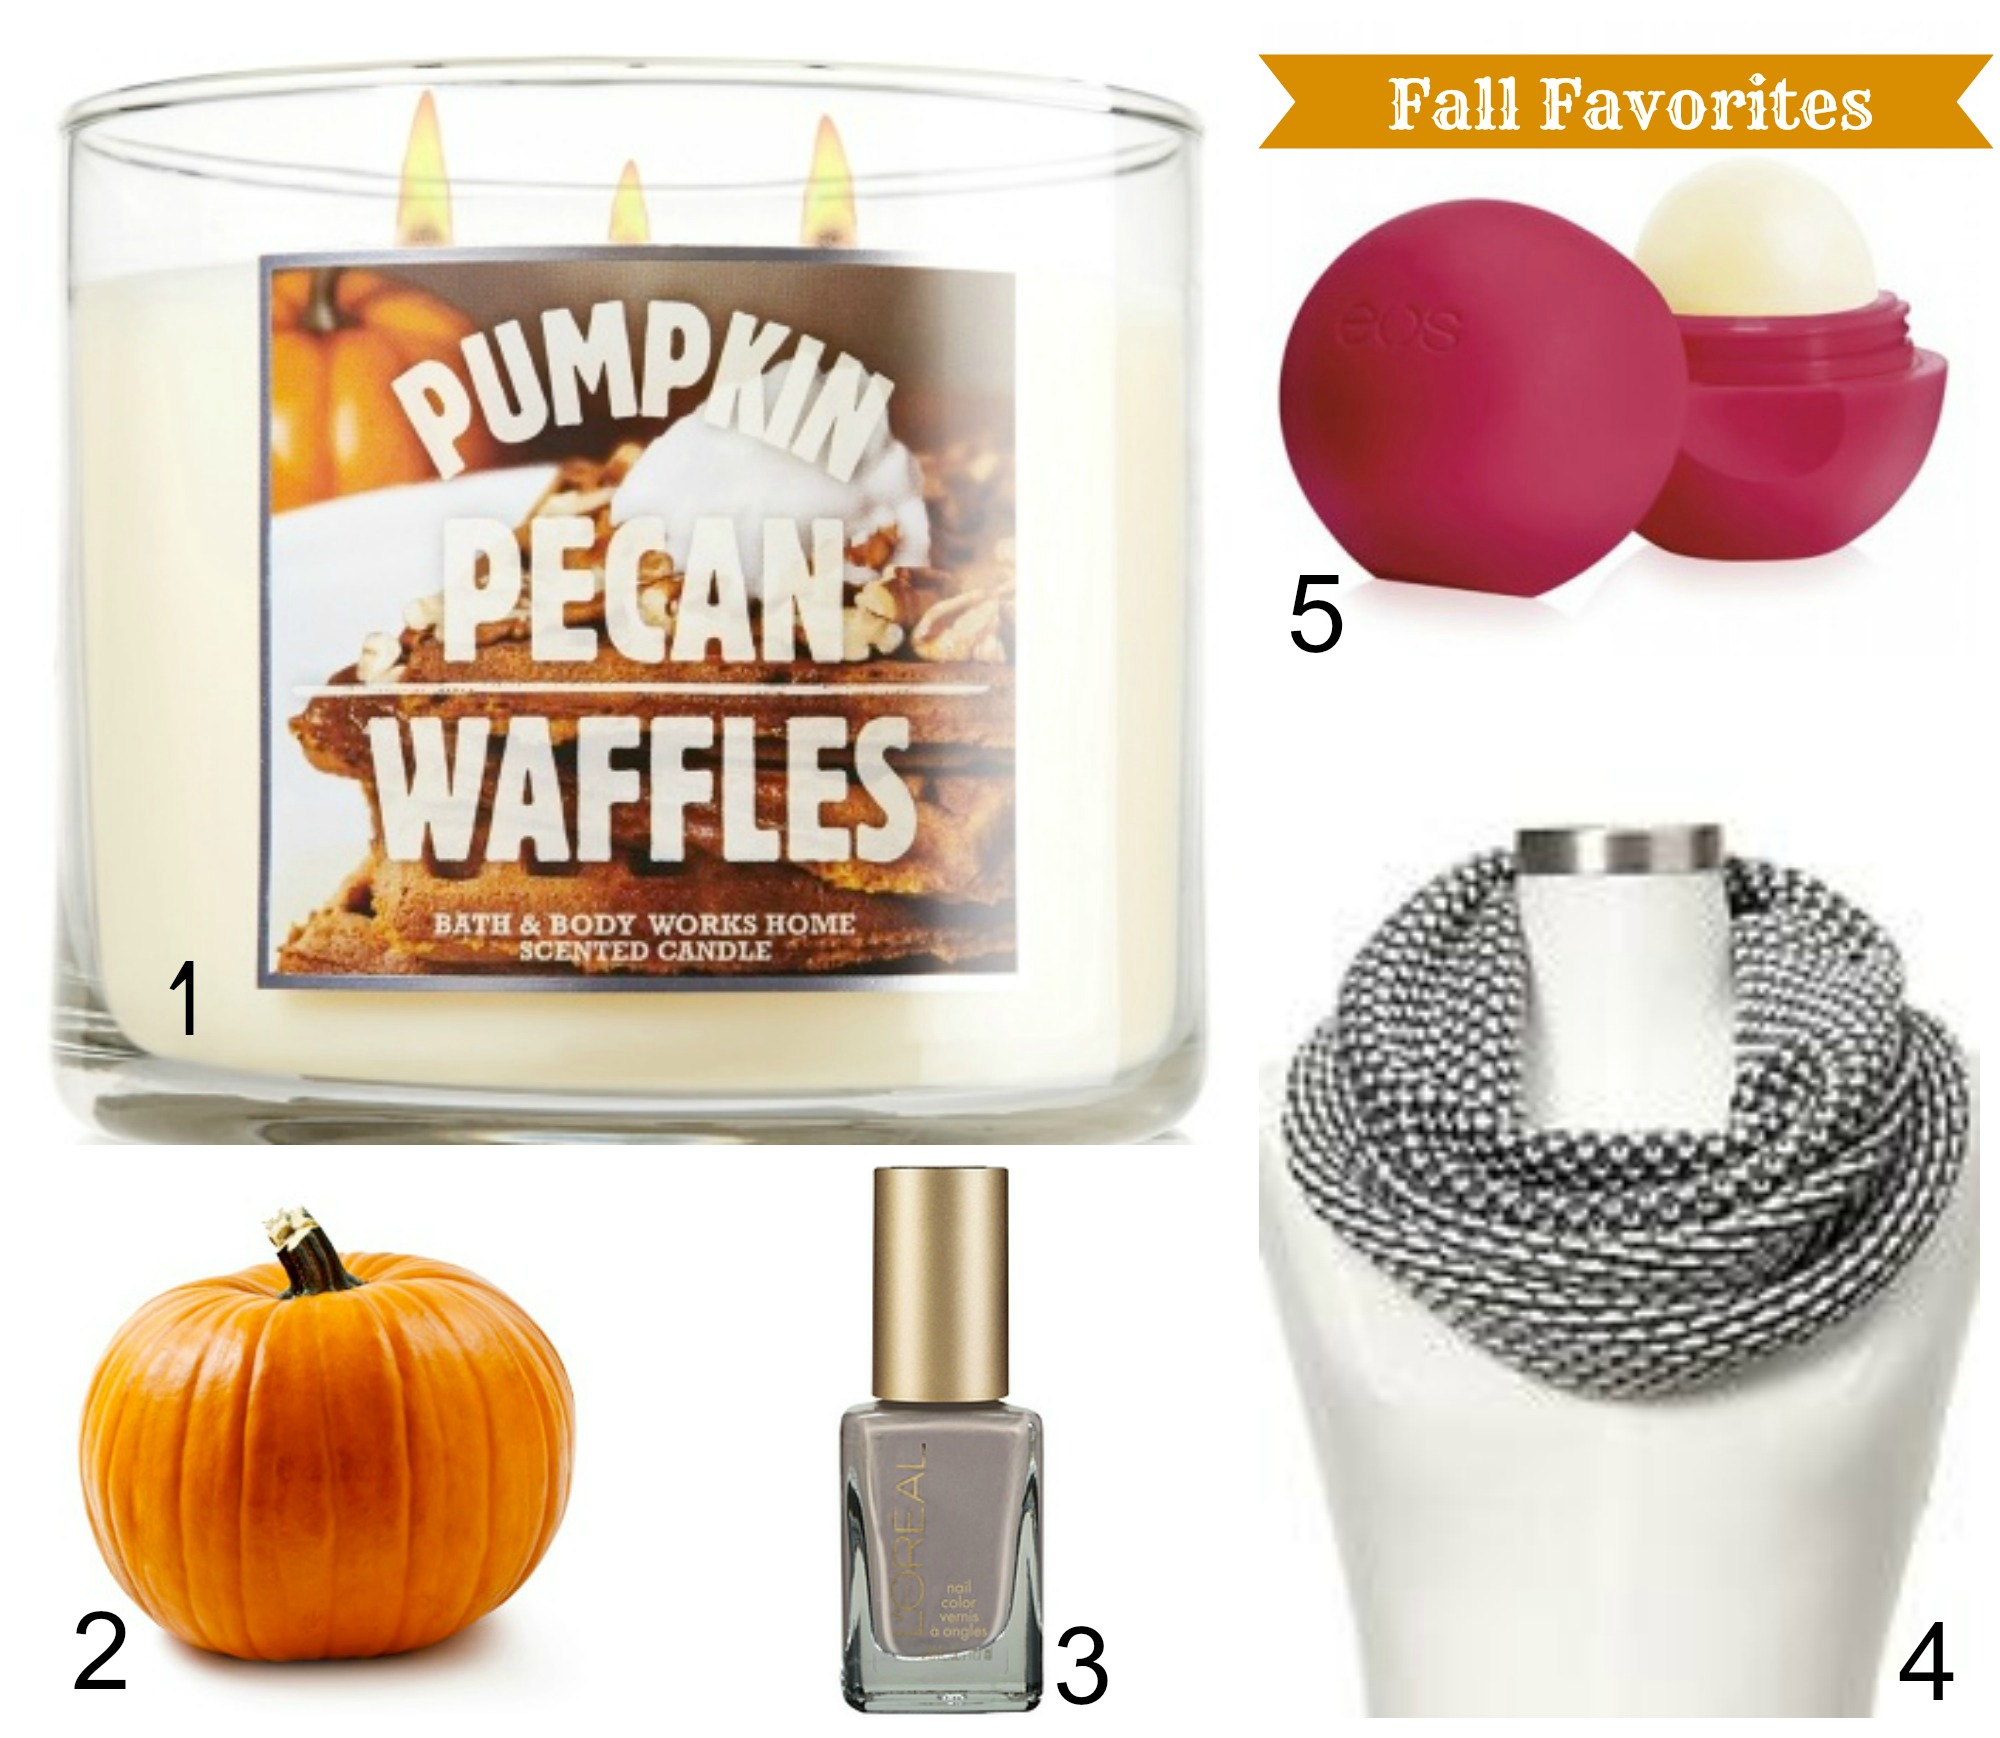 Fall Favorites 2013